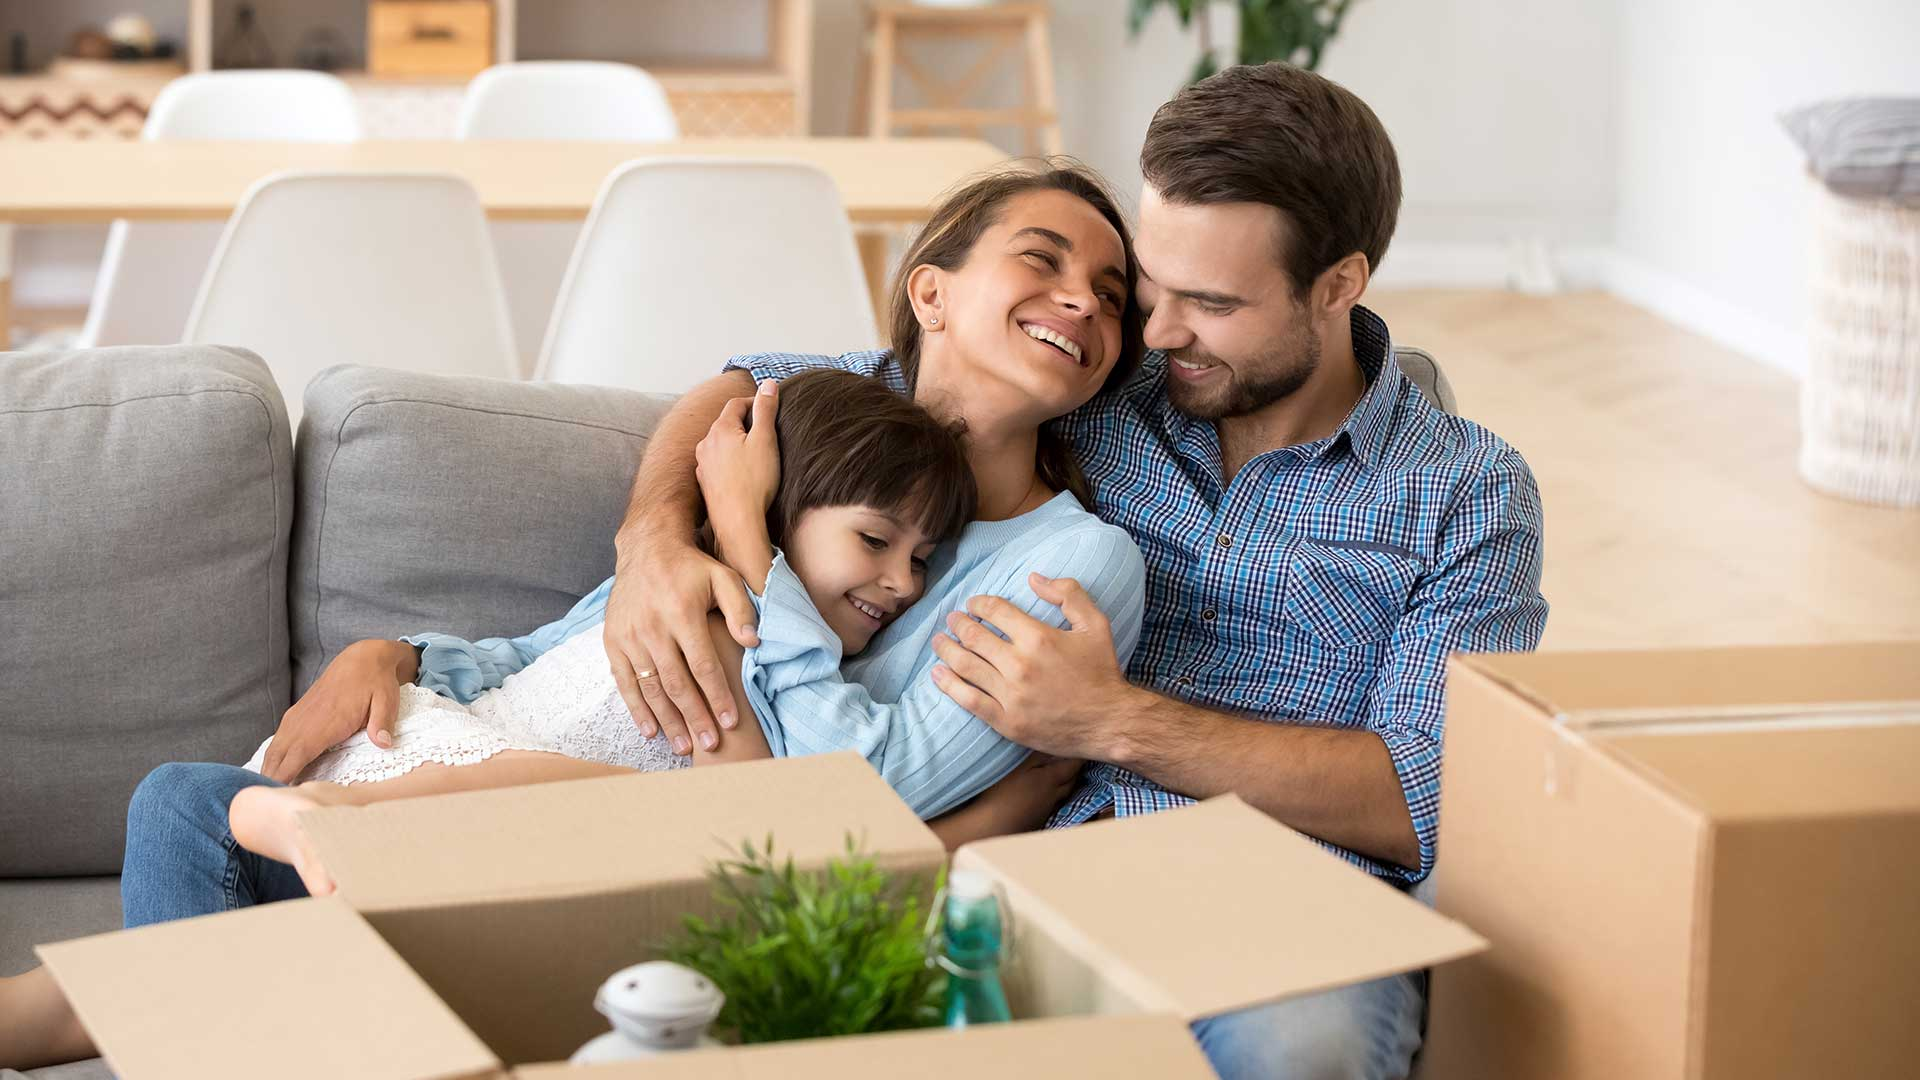 mom and dad hugging daughter on couch in new home surrounded by moving boxes